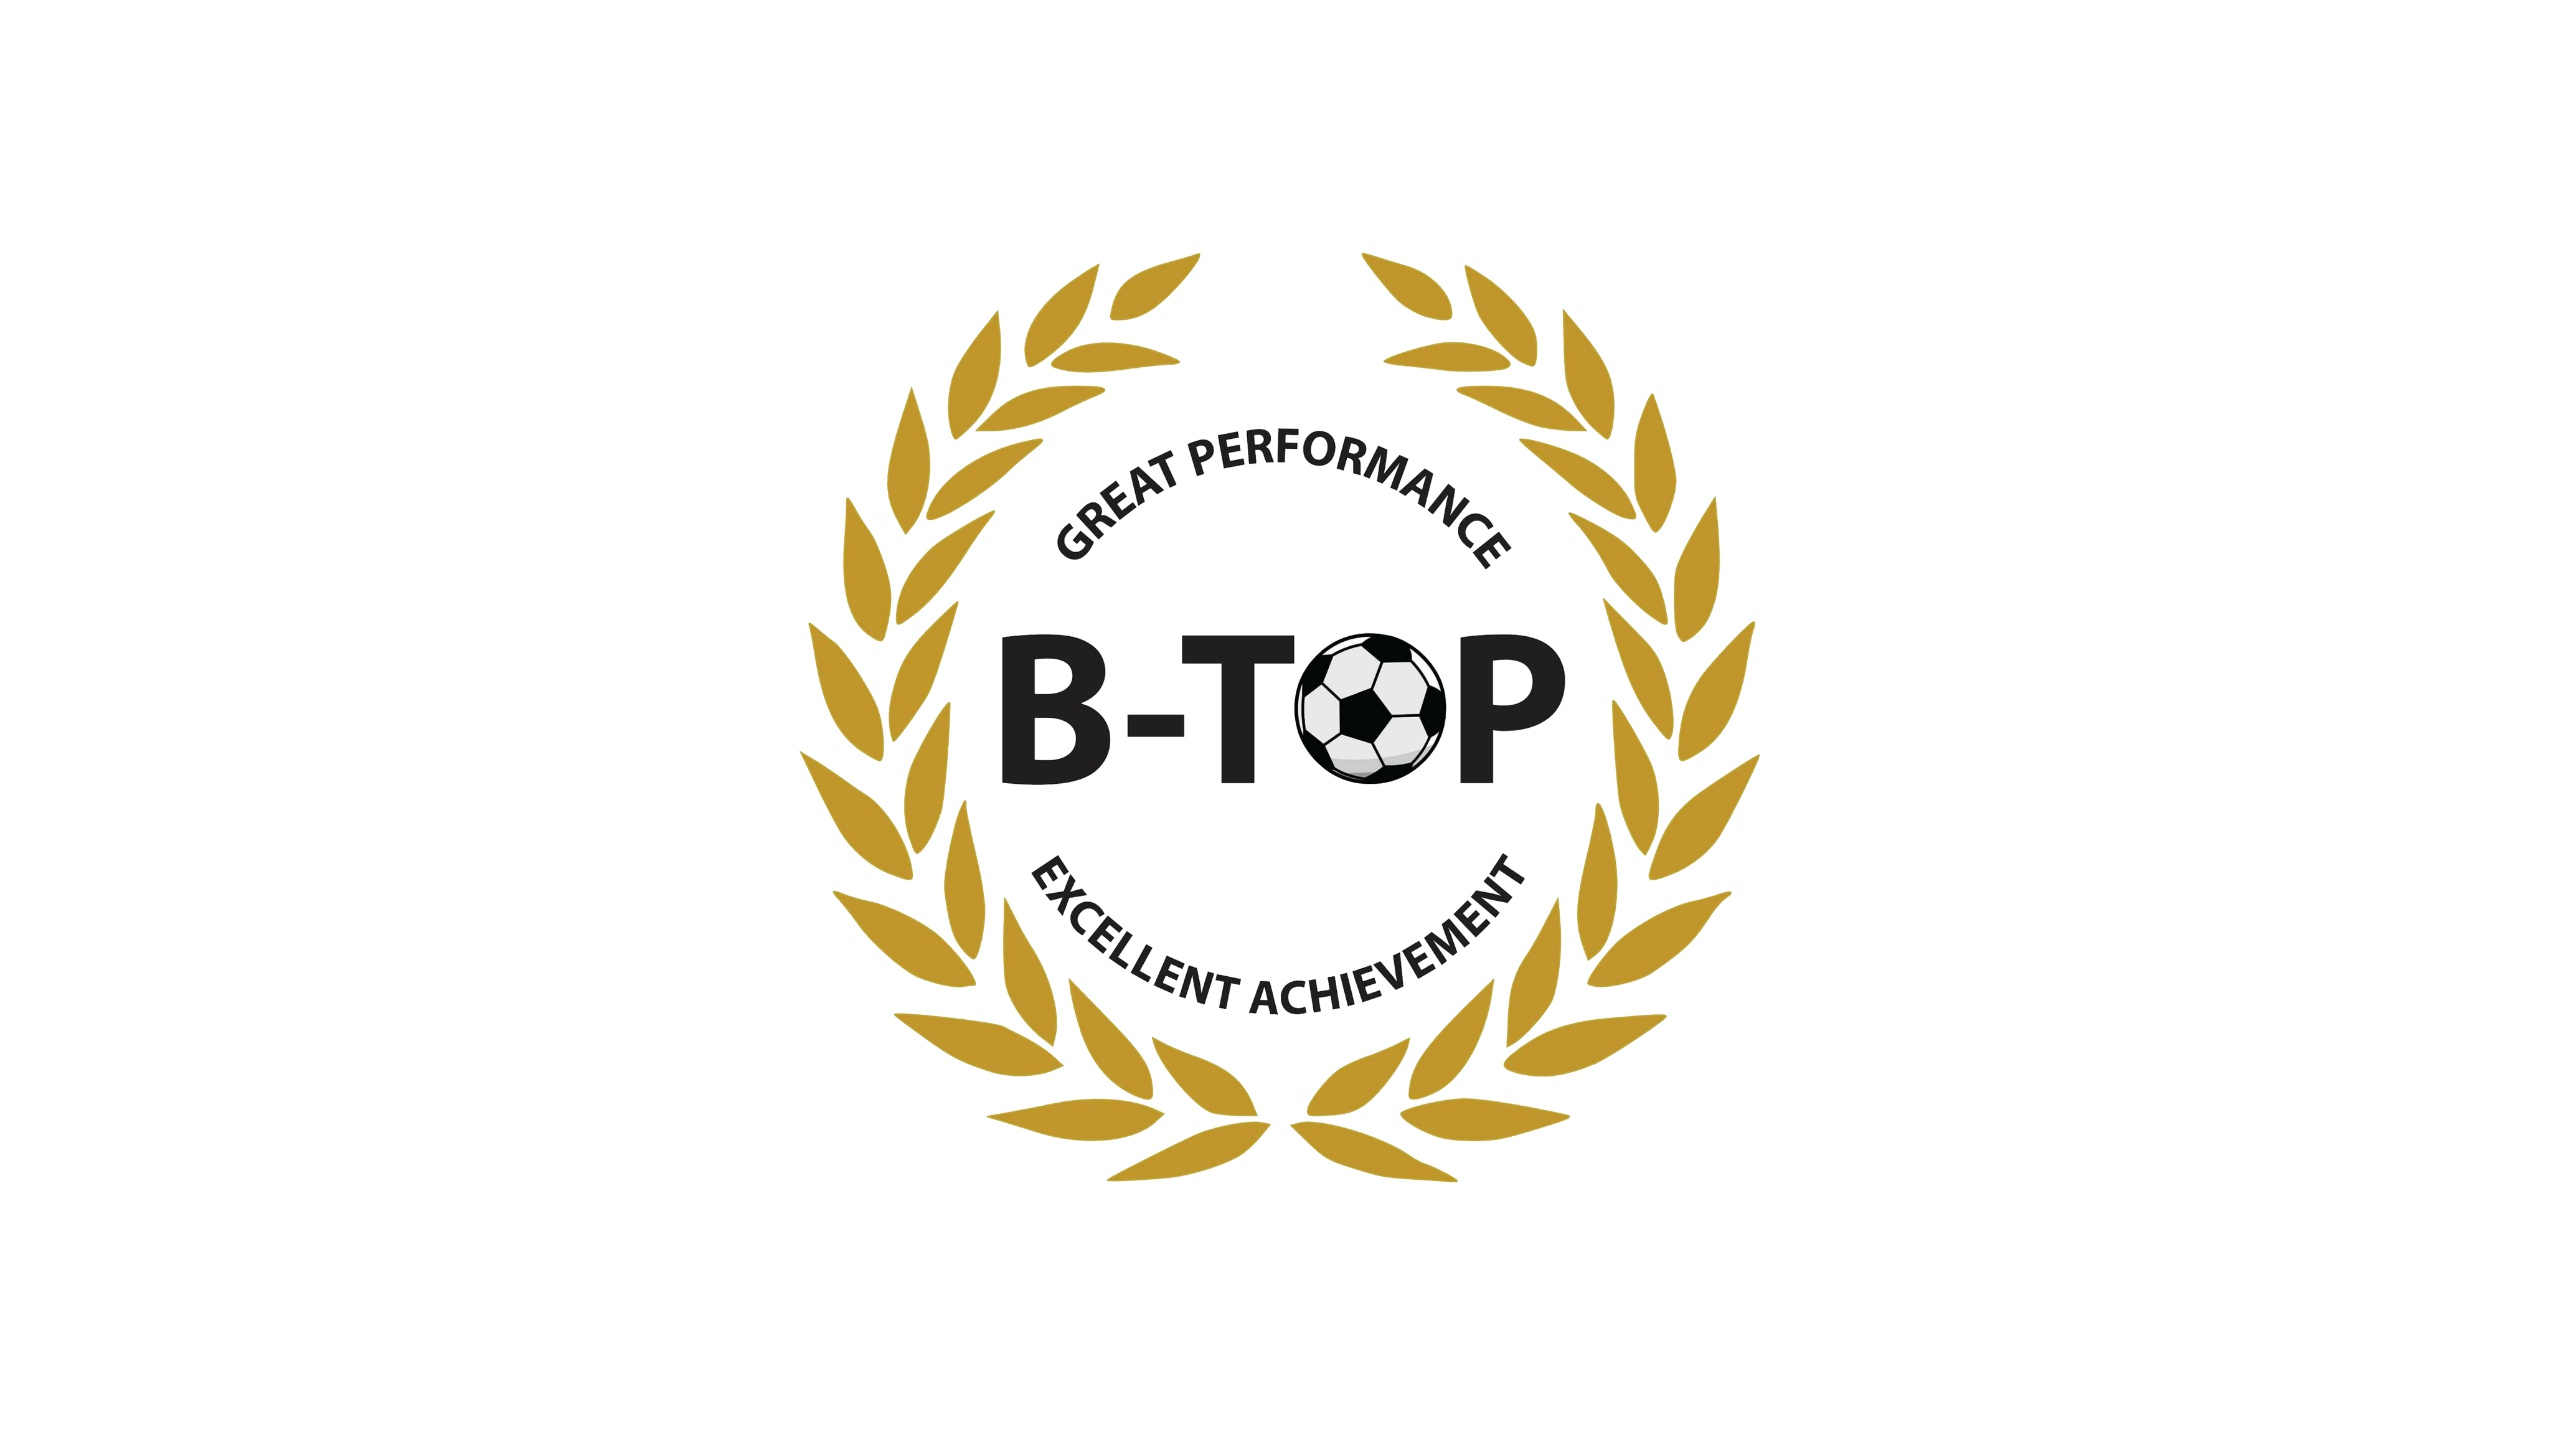 B-TOP SPORTS ACADEMY